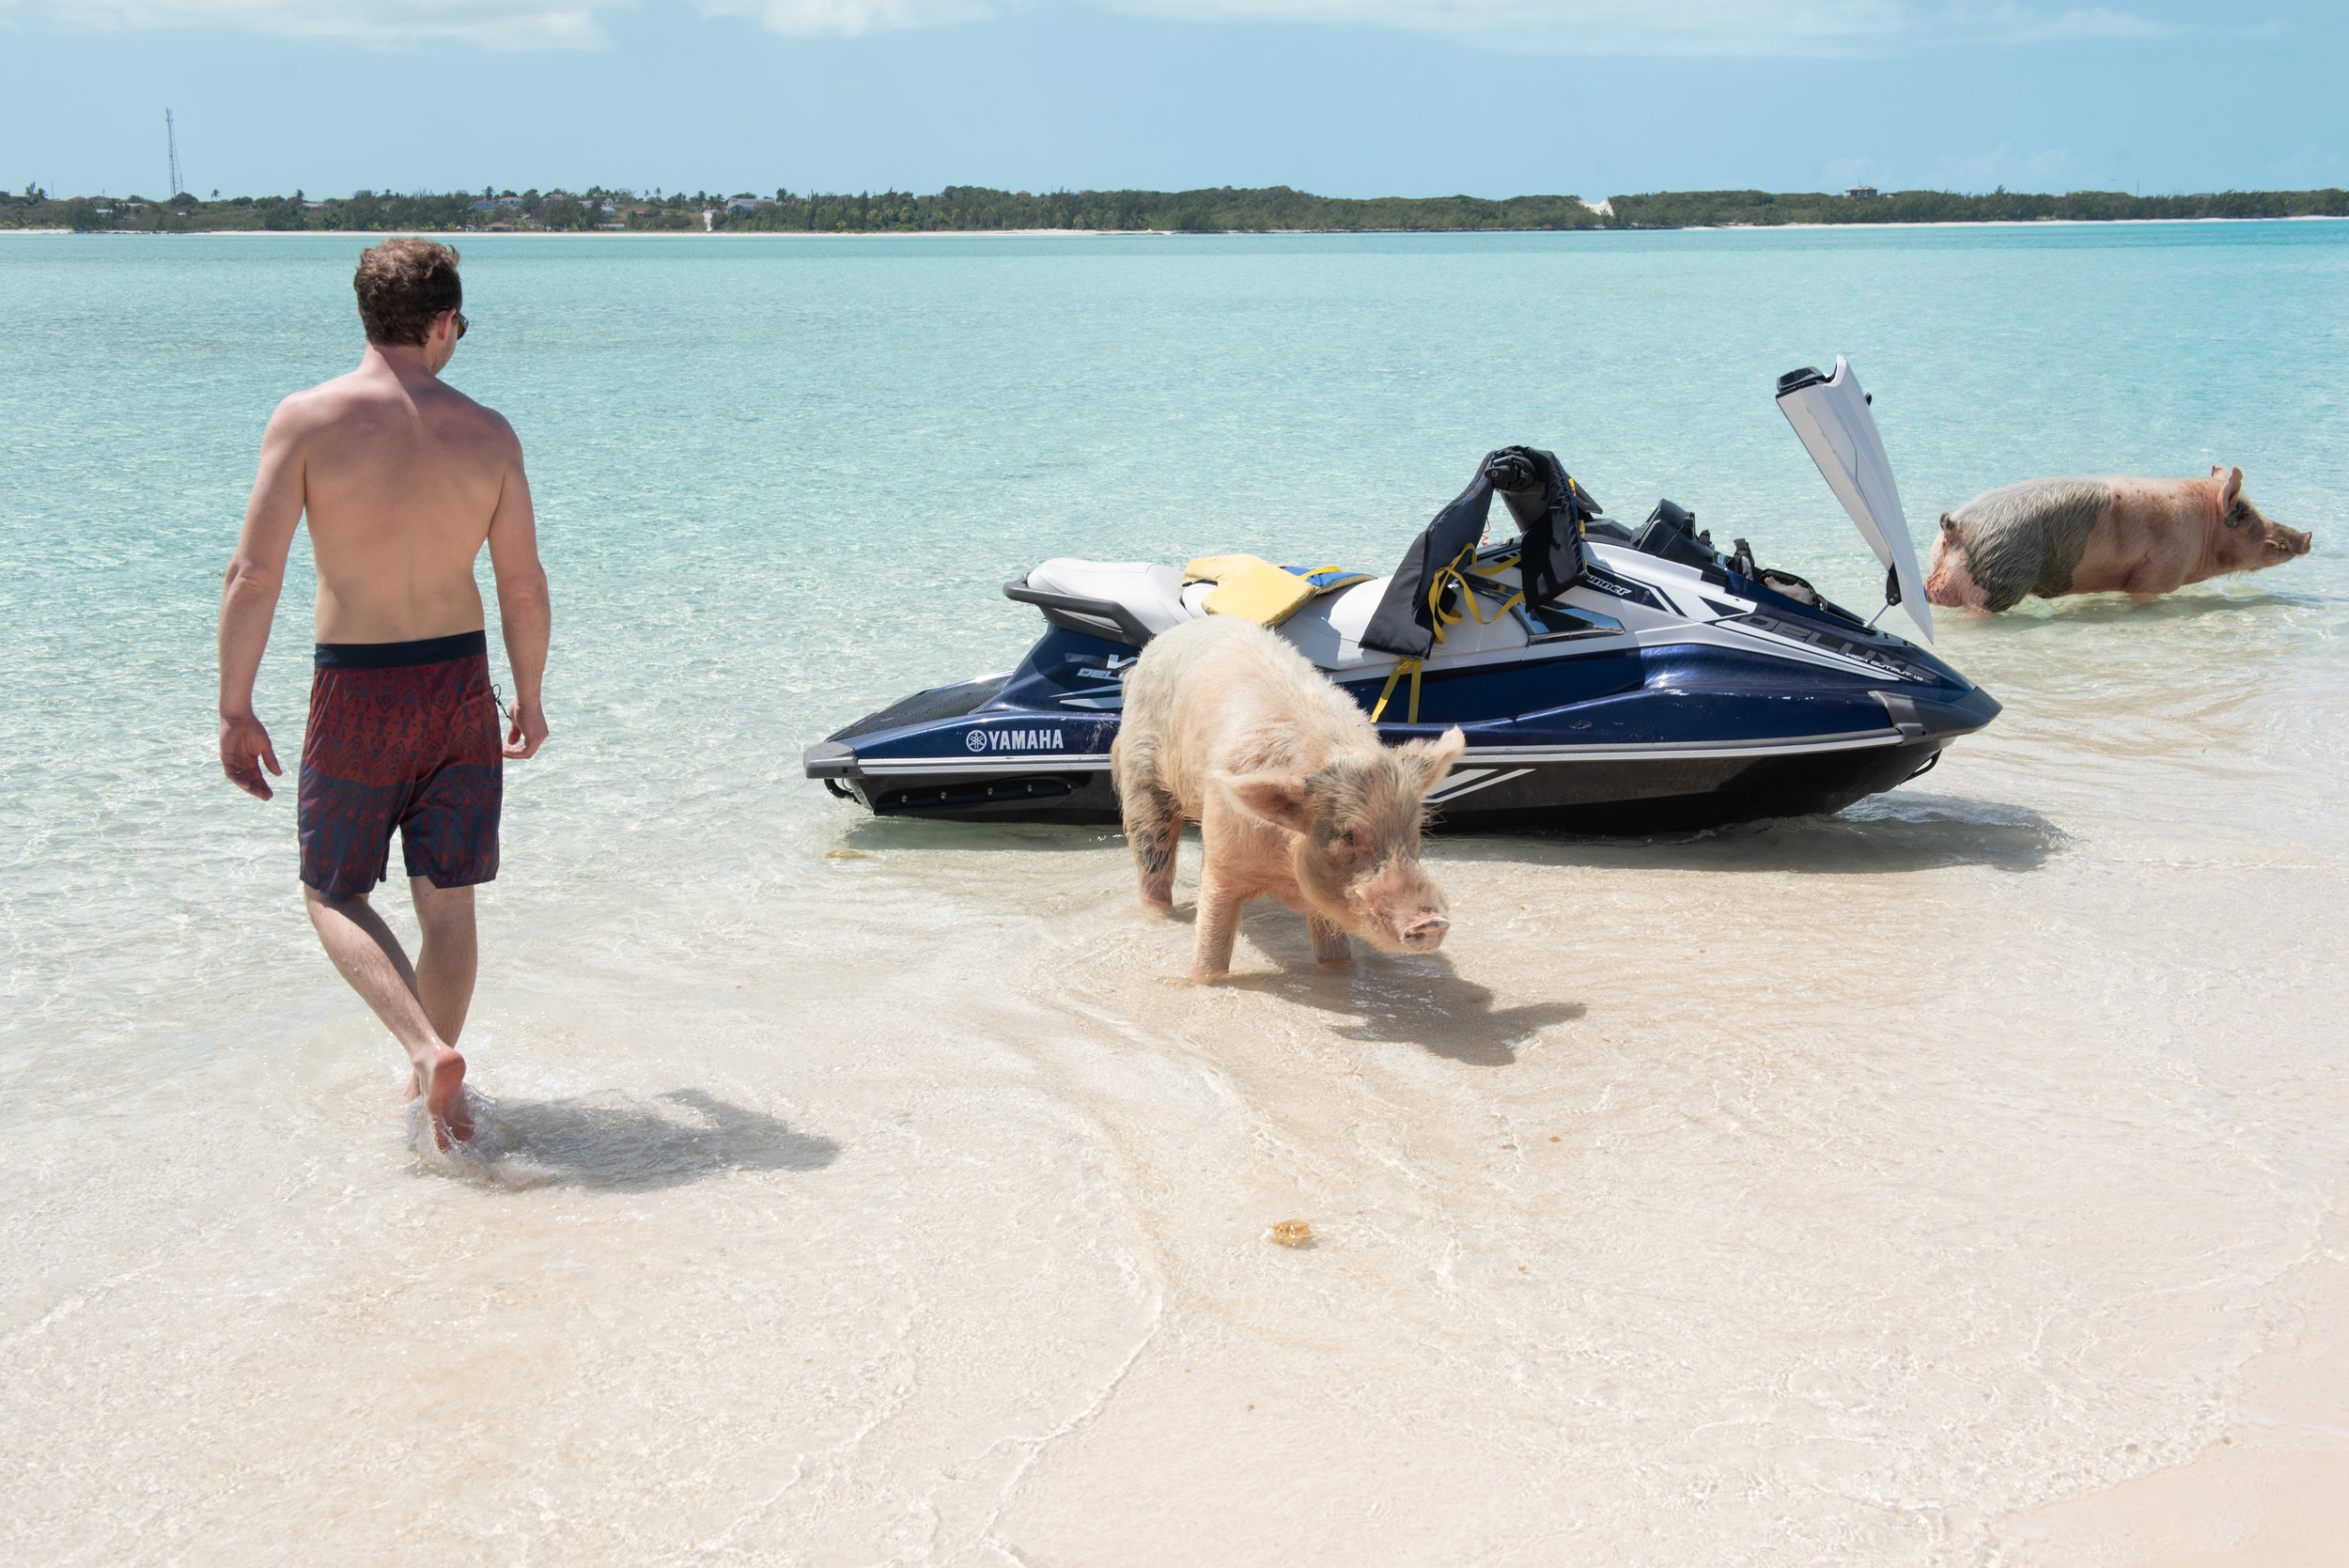 We were surpsied how aggressive the pigs were. They are used to the tourists bringing bread so they immediately swam towards us as we came in on the jet ski!!